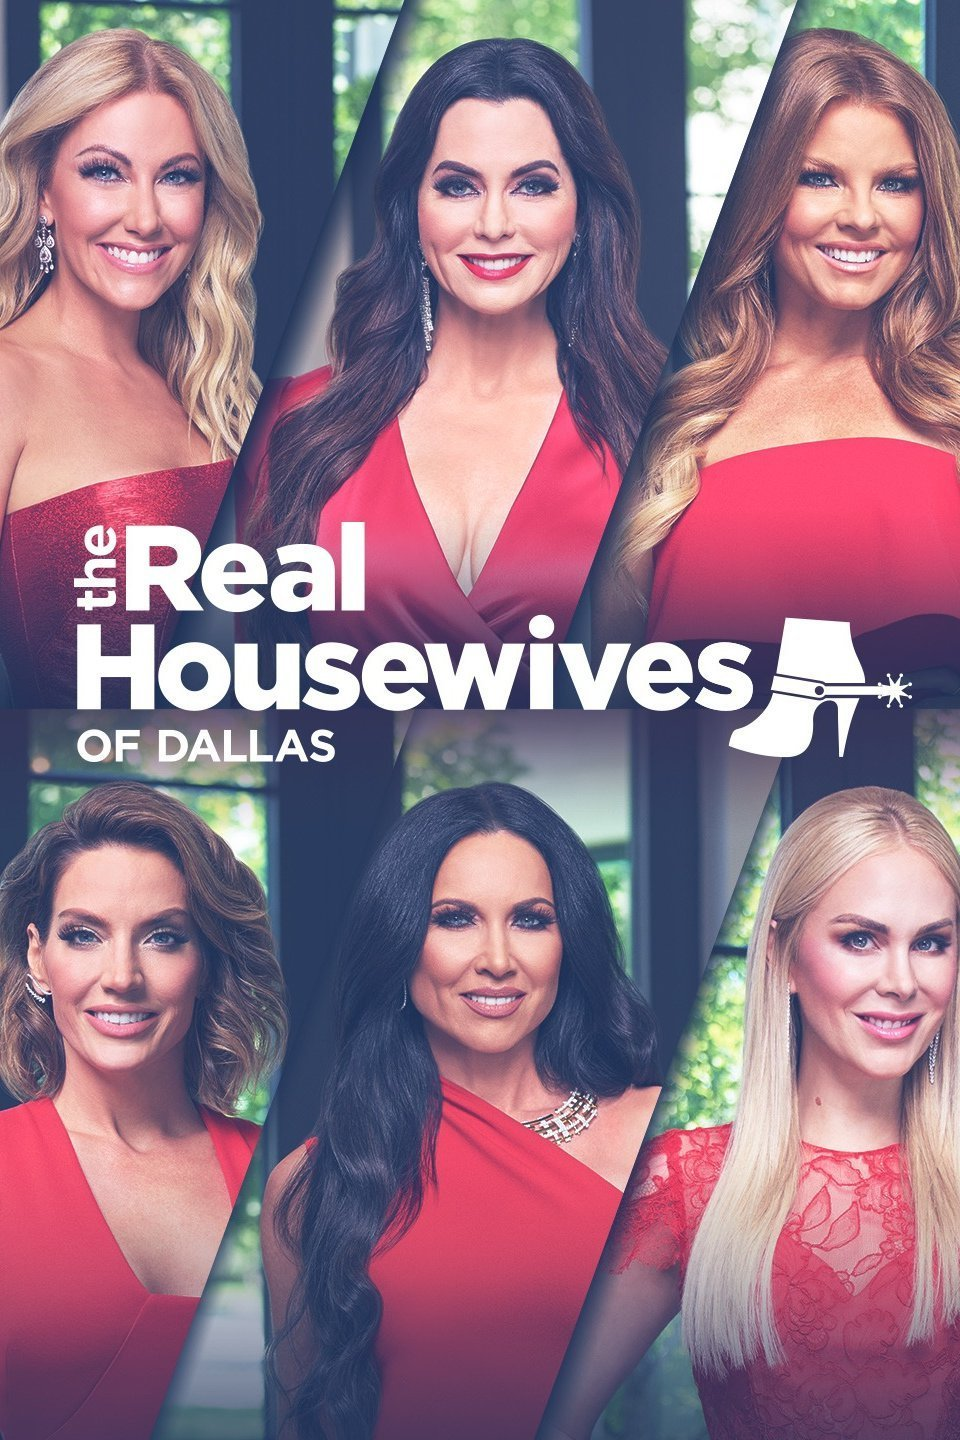 430117d8b38 The Real Housewives of Dallas (TV Series 2016–2019) - IMDb